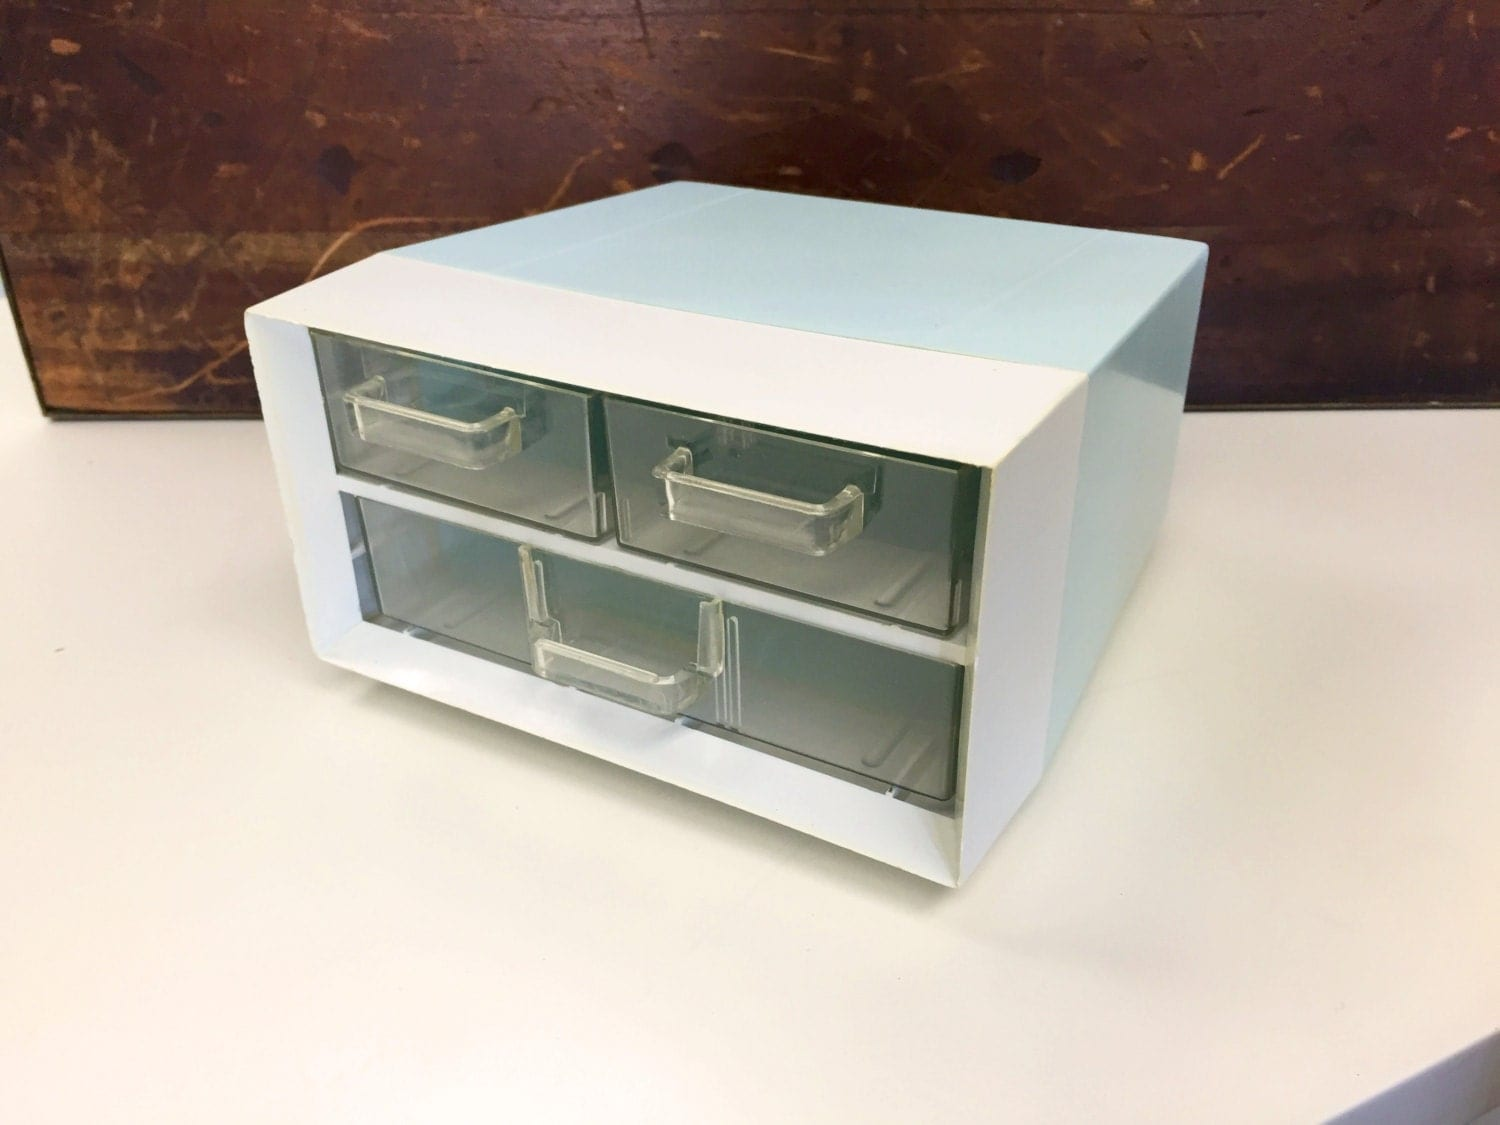 Blue white desk organizer with 3 drawers campro made in - Desk organizer drawers ...